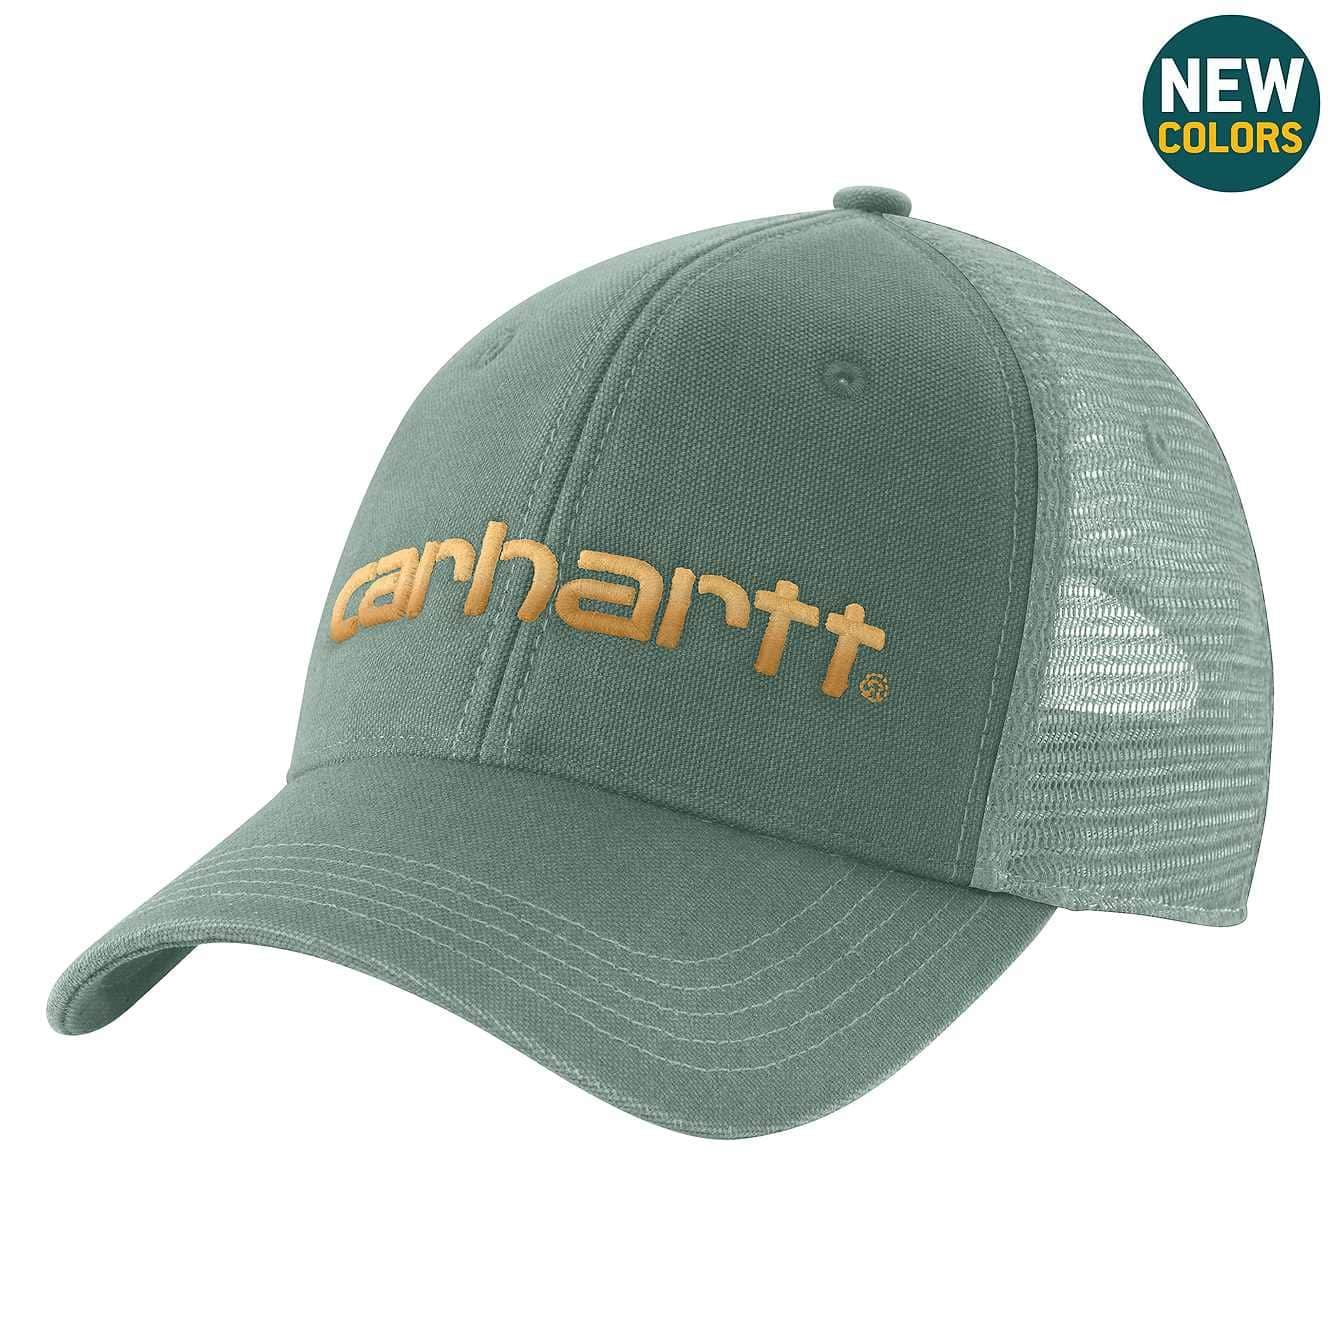 Picture of Mesh-Back Cap in Leaf Green